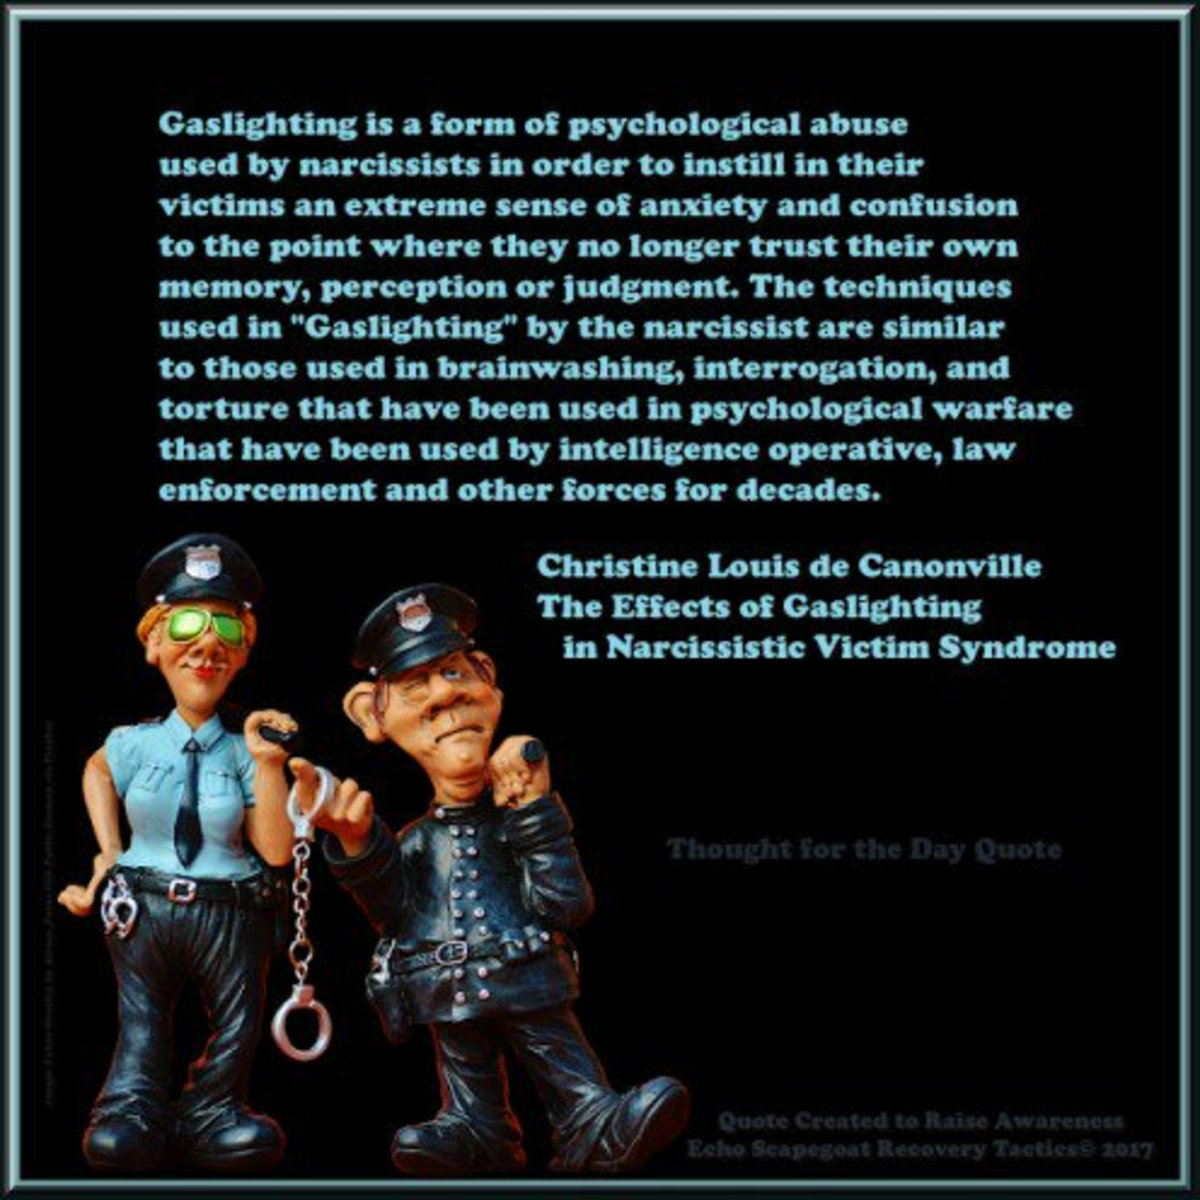 Gaslighting Psychological Abuse Quote by Christine Louis de Canonville